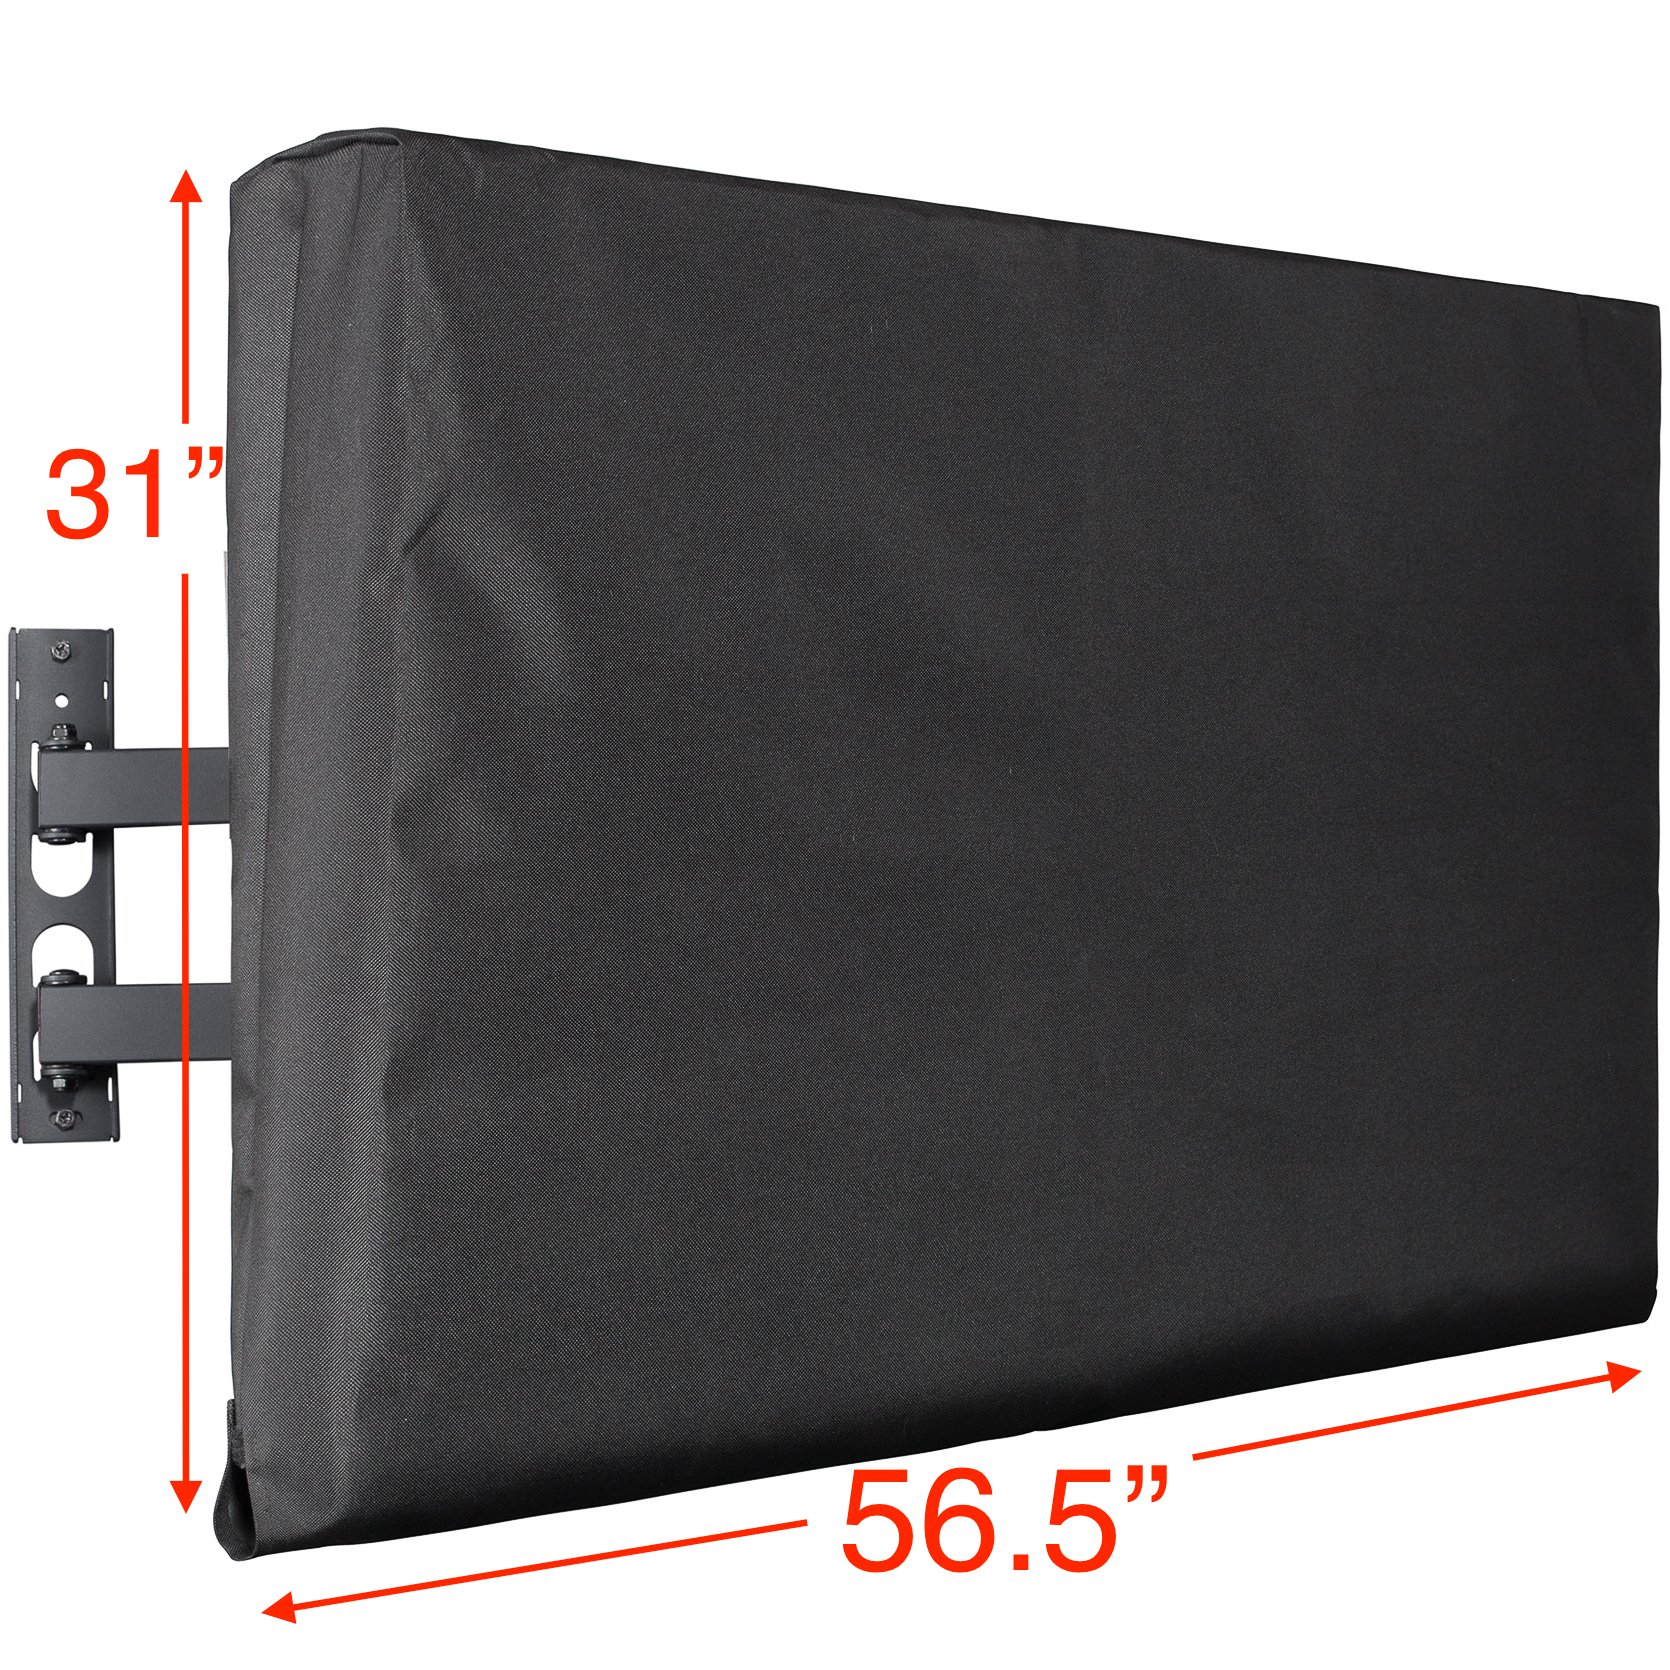 Kuzy TV Cover 55'', Display Weatherproof Outdoor TV Cover Protector for Flat Screen up to 55-inch - Fits Most TV Mounts, LCD, LED, Plasma Screens, Made in USA - BLACK